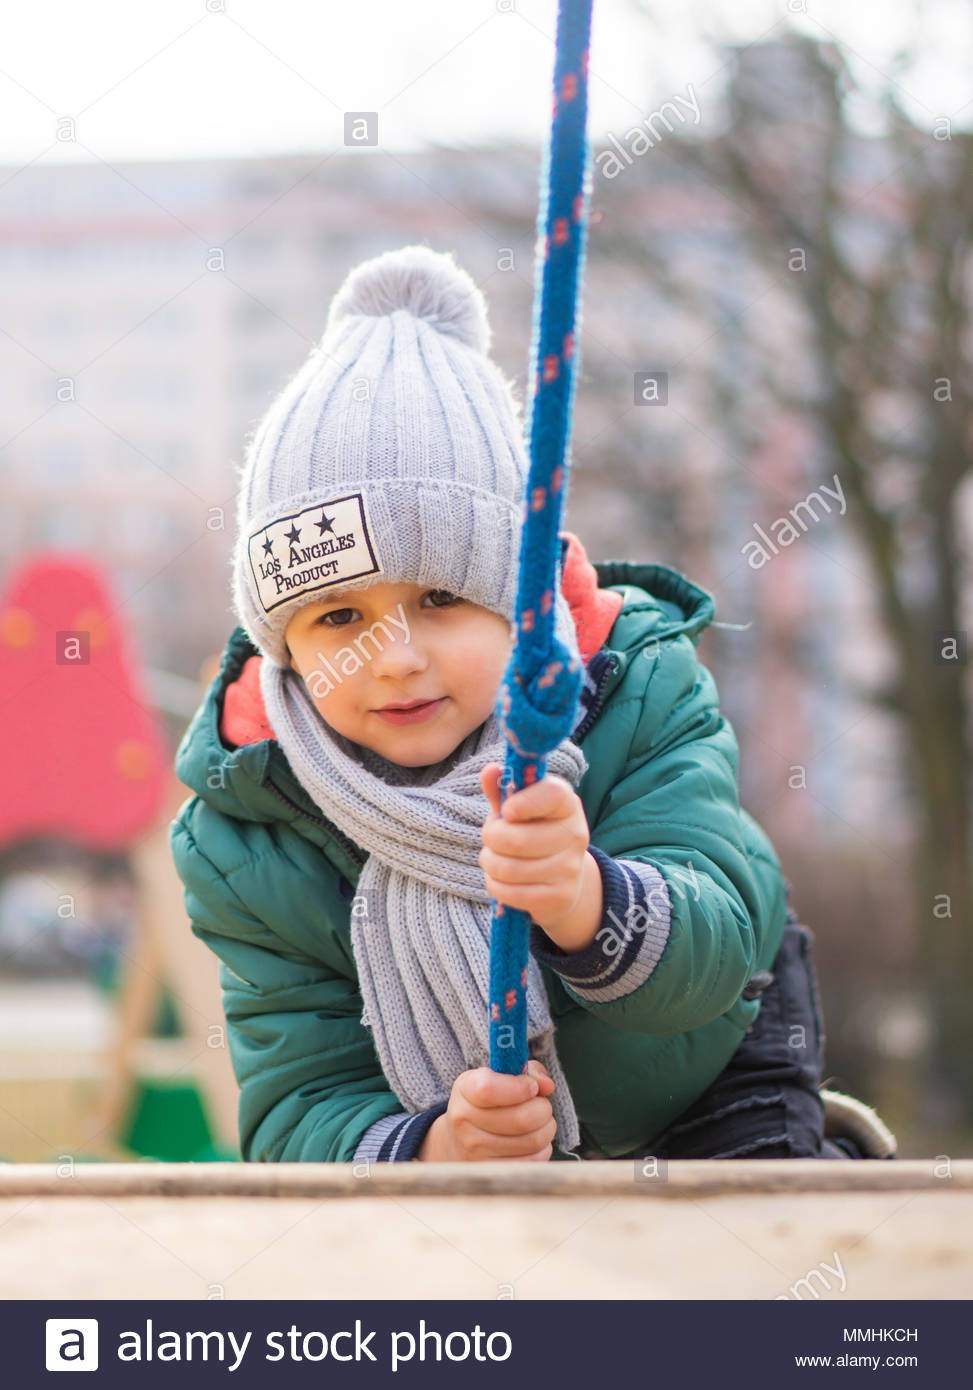 Young boy with warm hat climbing on a equipment at a playground in Poznan, Poland - Stock Image